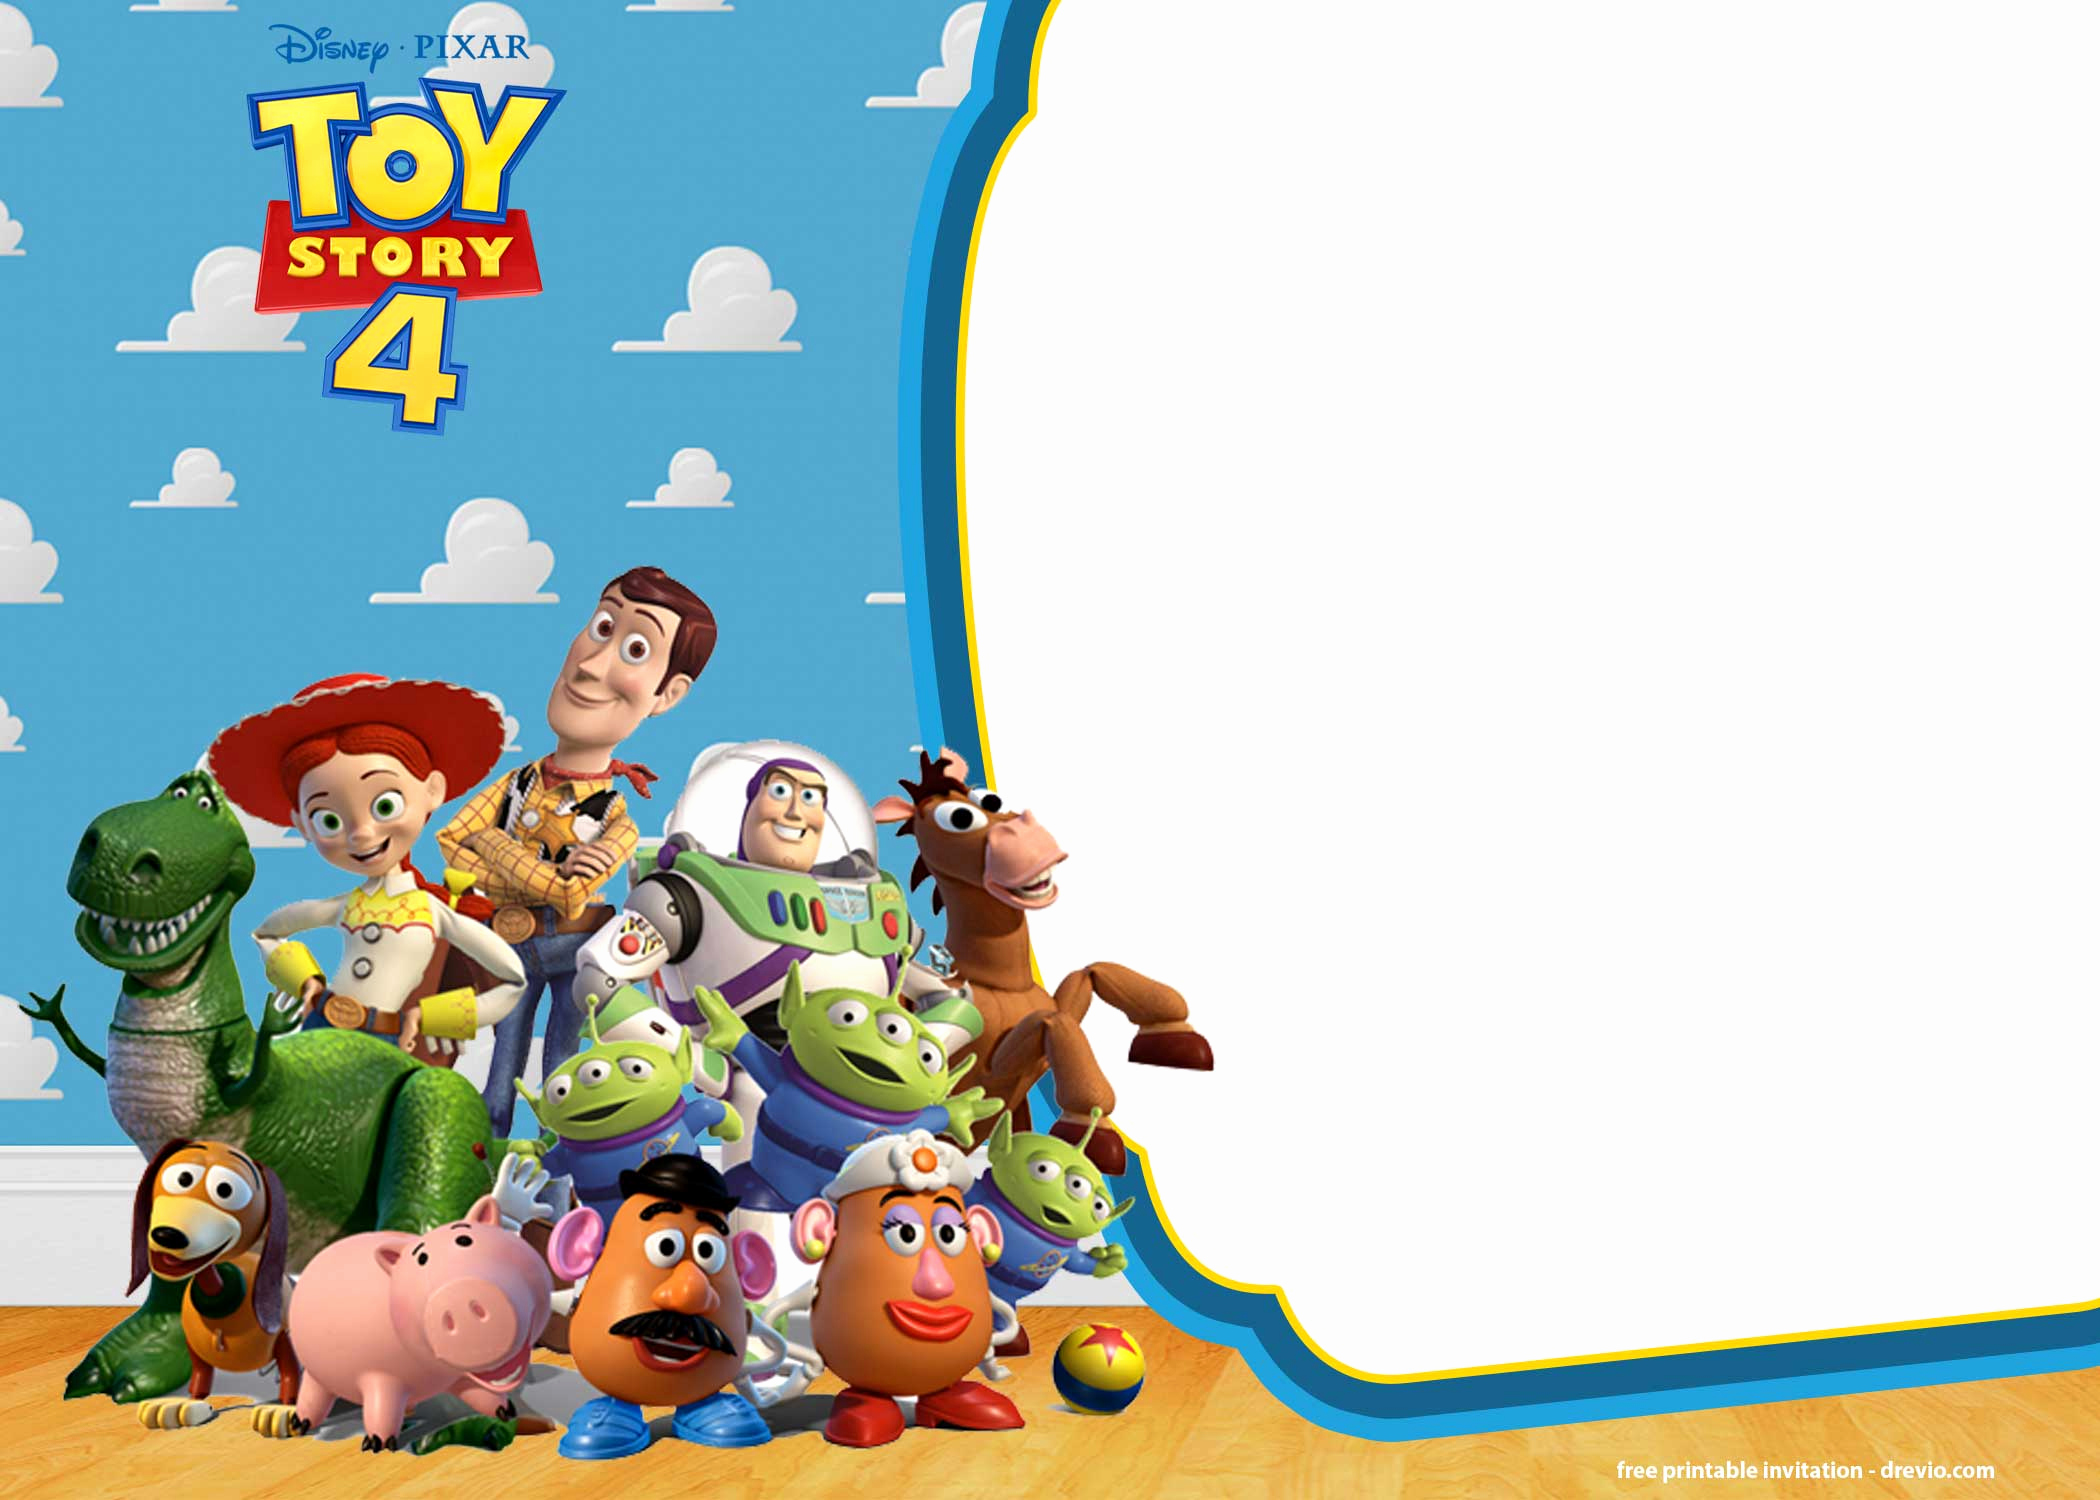 Toy Story Invitation Templates Free Lovely Free Printable toy Story 4 Invitation Templates